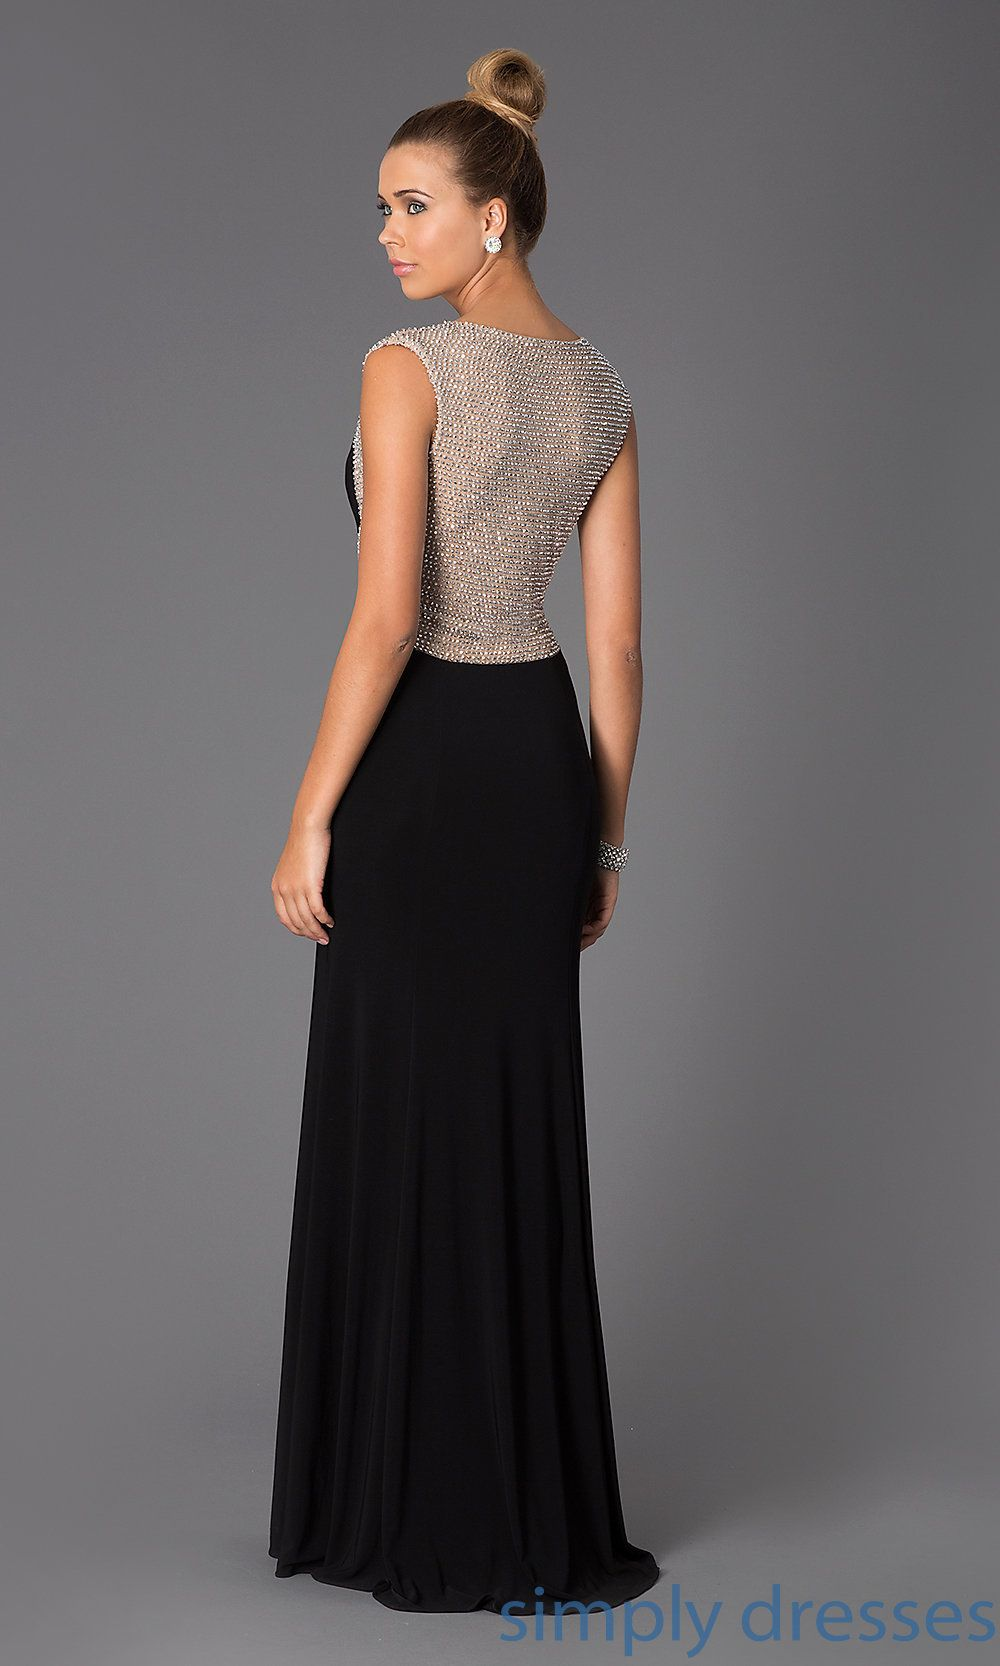 Xscape black formal dress with sheer silver back elegant evening